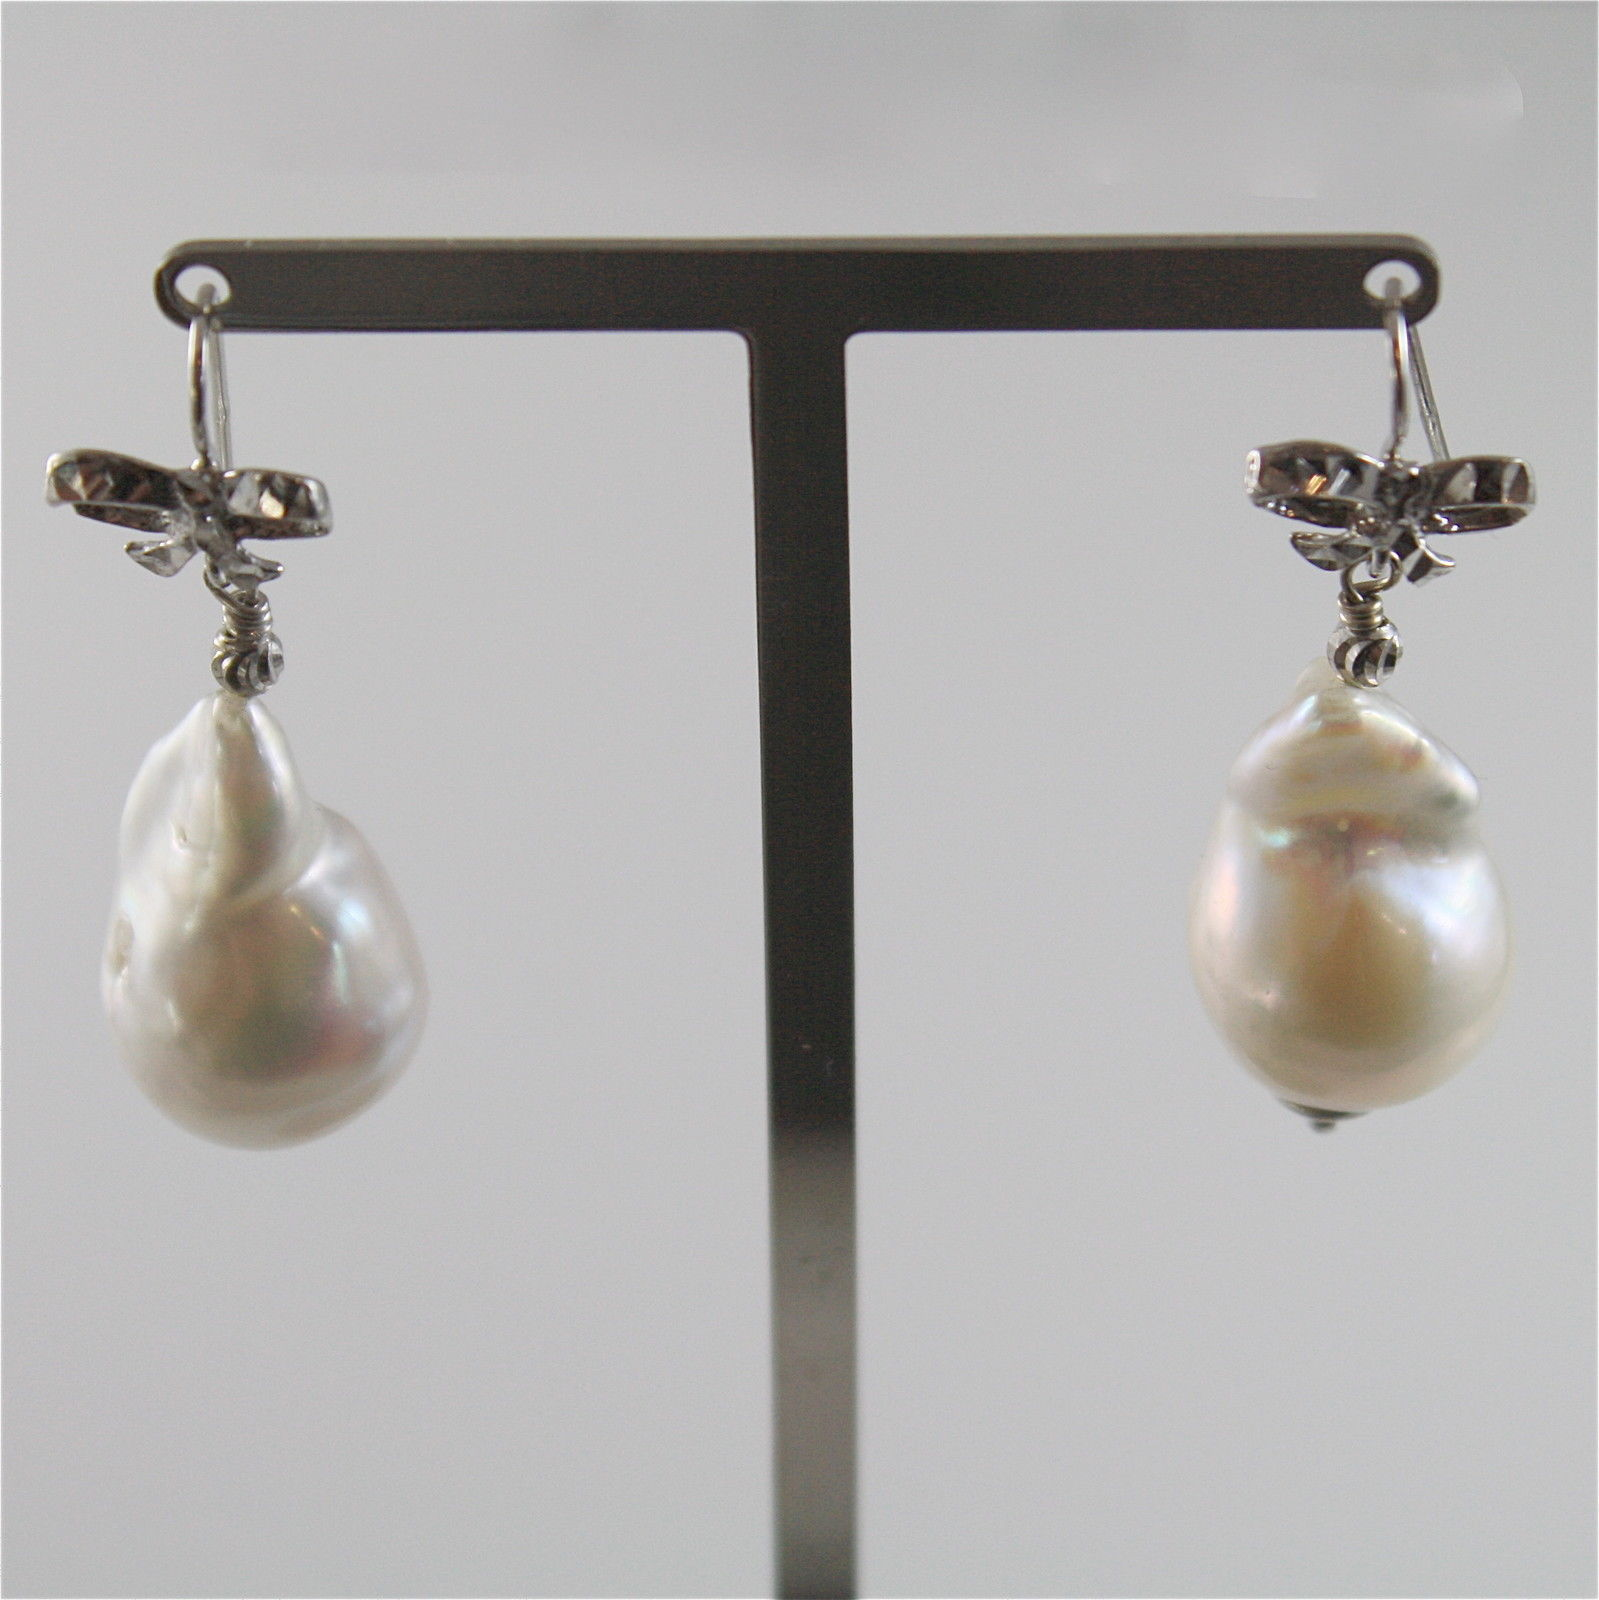 EARRINGS SILVER 925 WITH BEAUTIFUL WHITE PEARLS BAROQUE STYLE OF WATER DOLCE